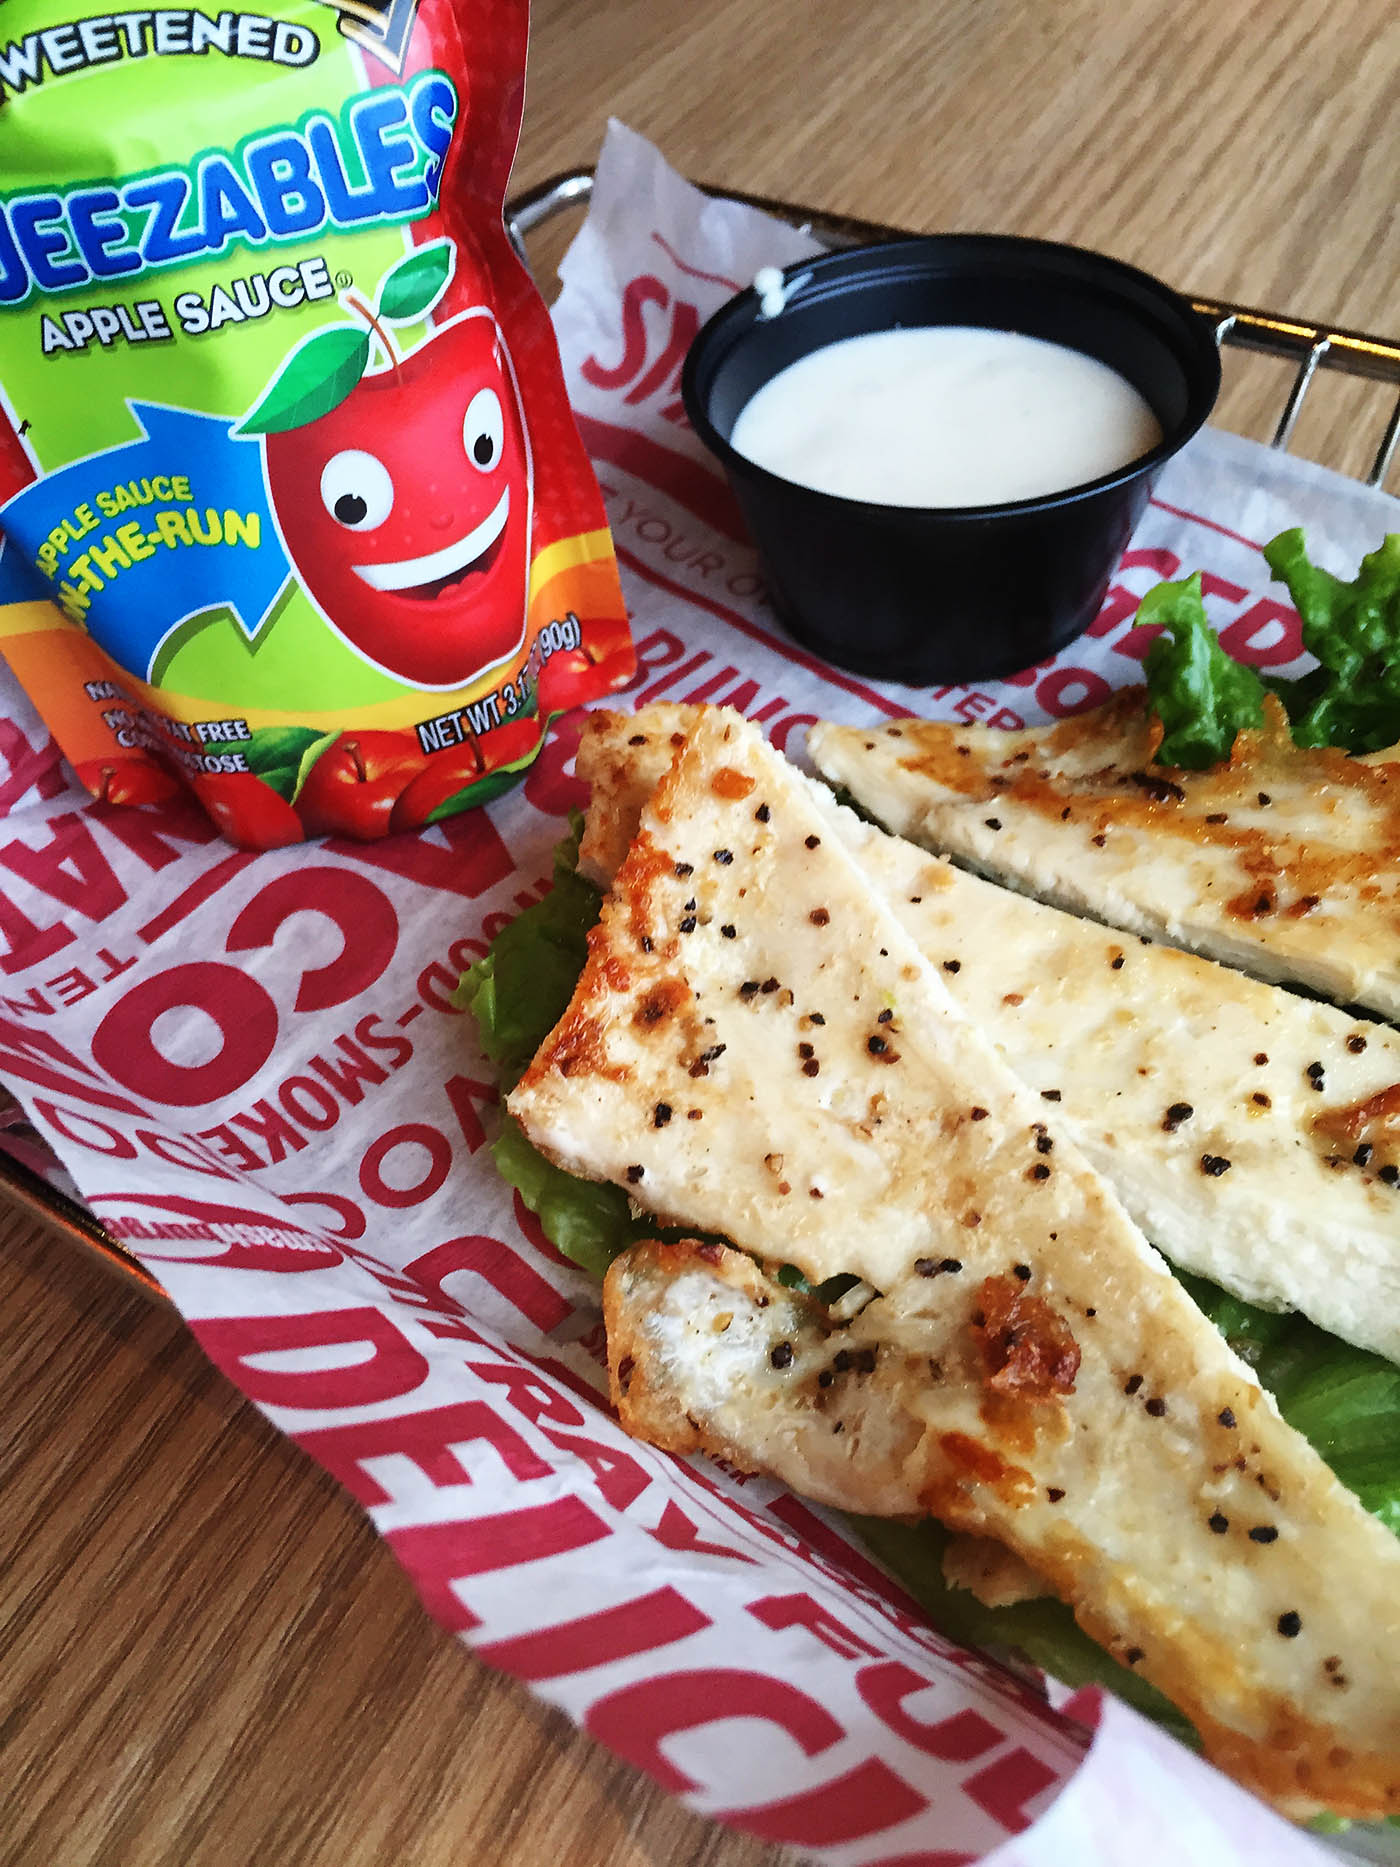 Smashburger now has grilled chicken strips and unsweetened applesauce on their kids menu!